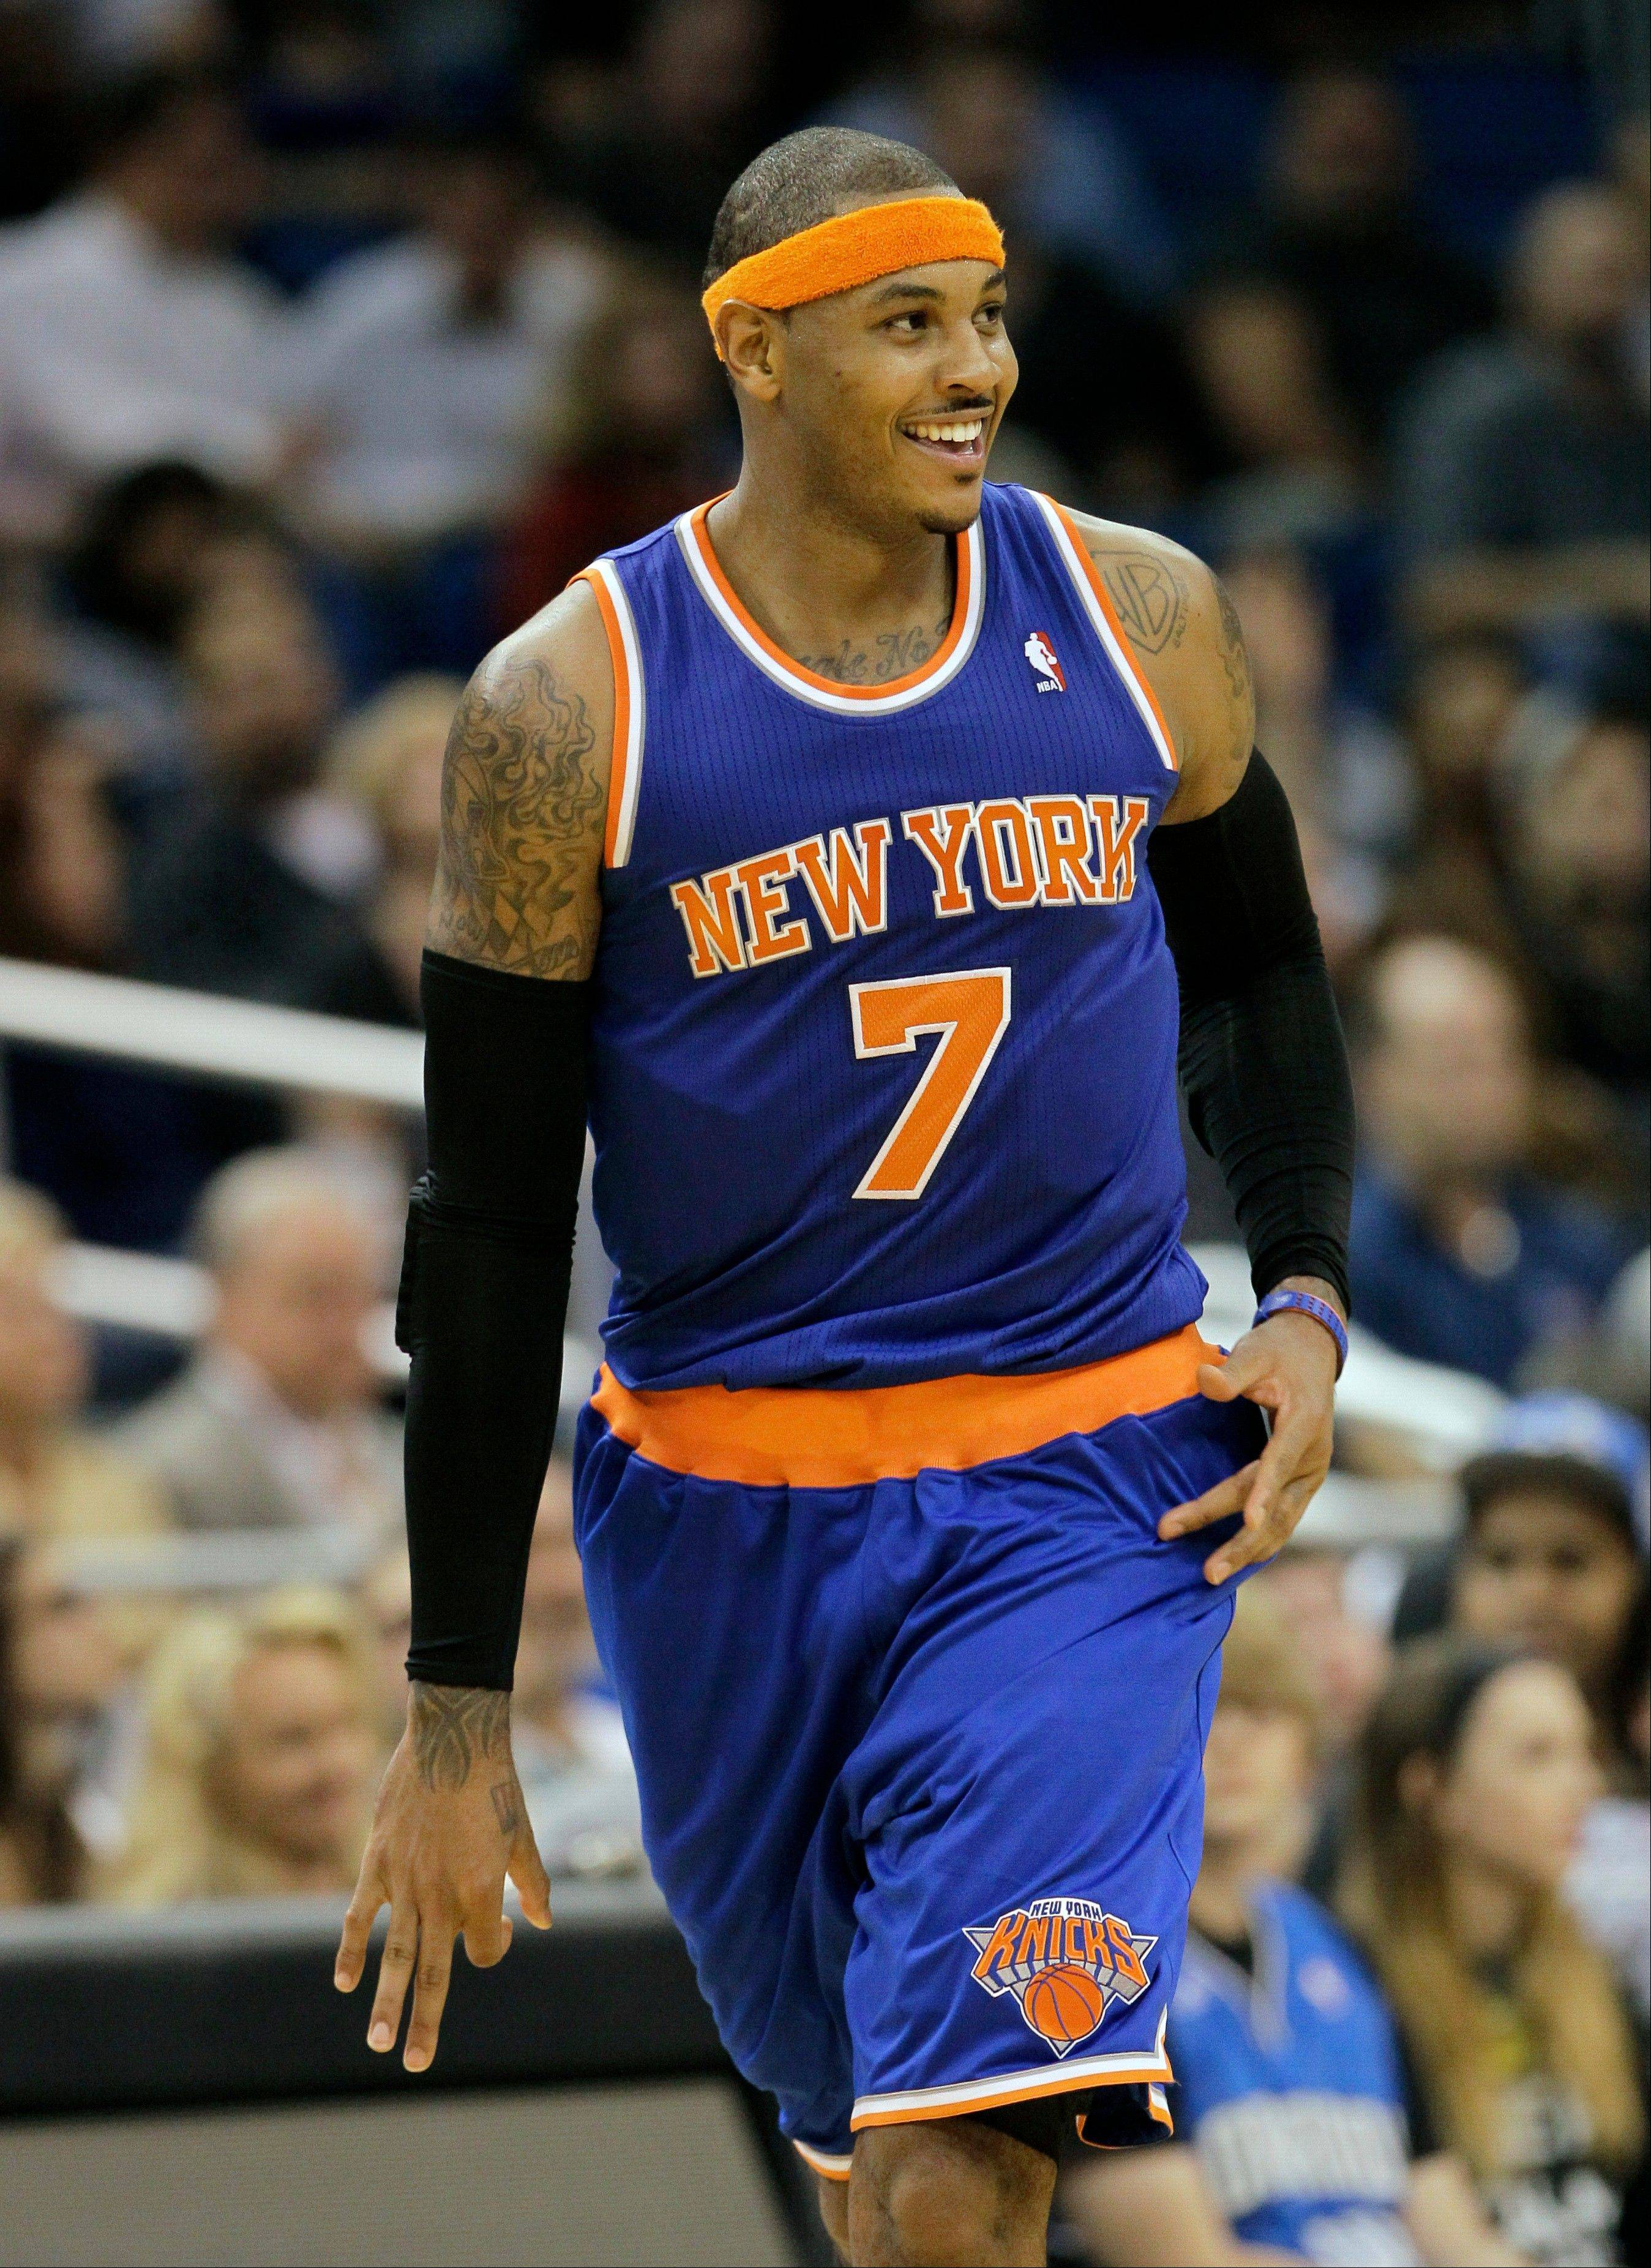 New York Knicks forward Carmelo Anthony holds out three fingers on his hand hitting a 3-pointer against the Orlando Magic Tuesday during the fourth quarter in Orlando, Fla. The Knicks won 99-89. Anthony scored 25 points.